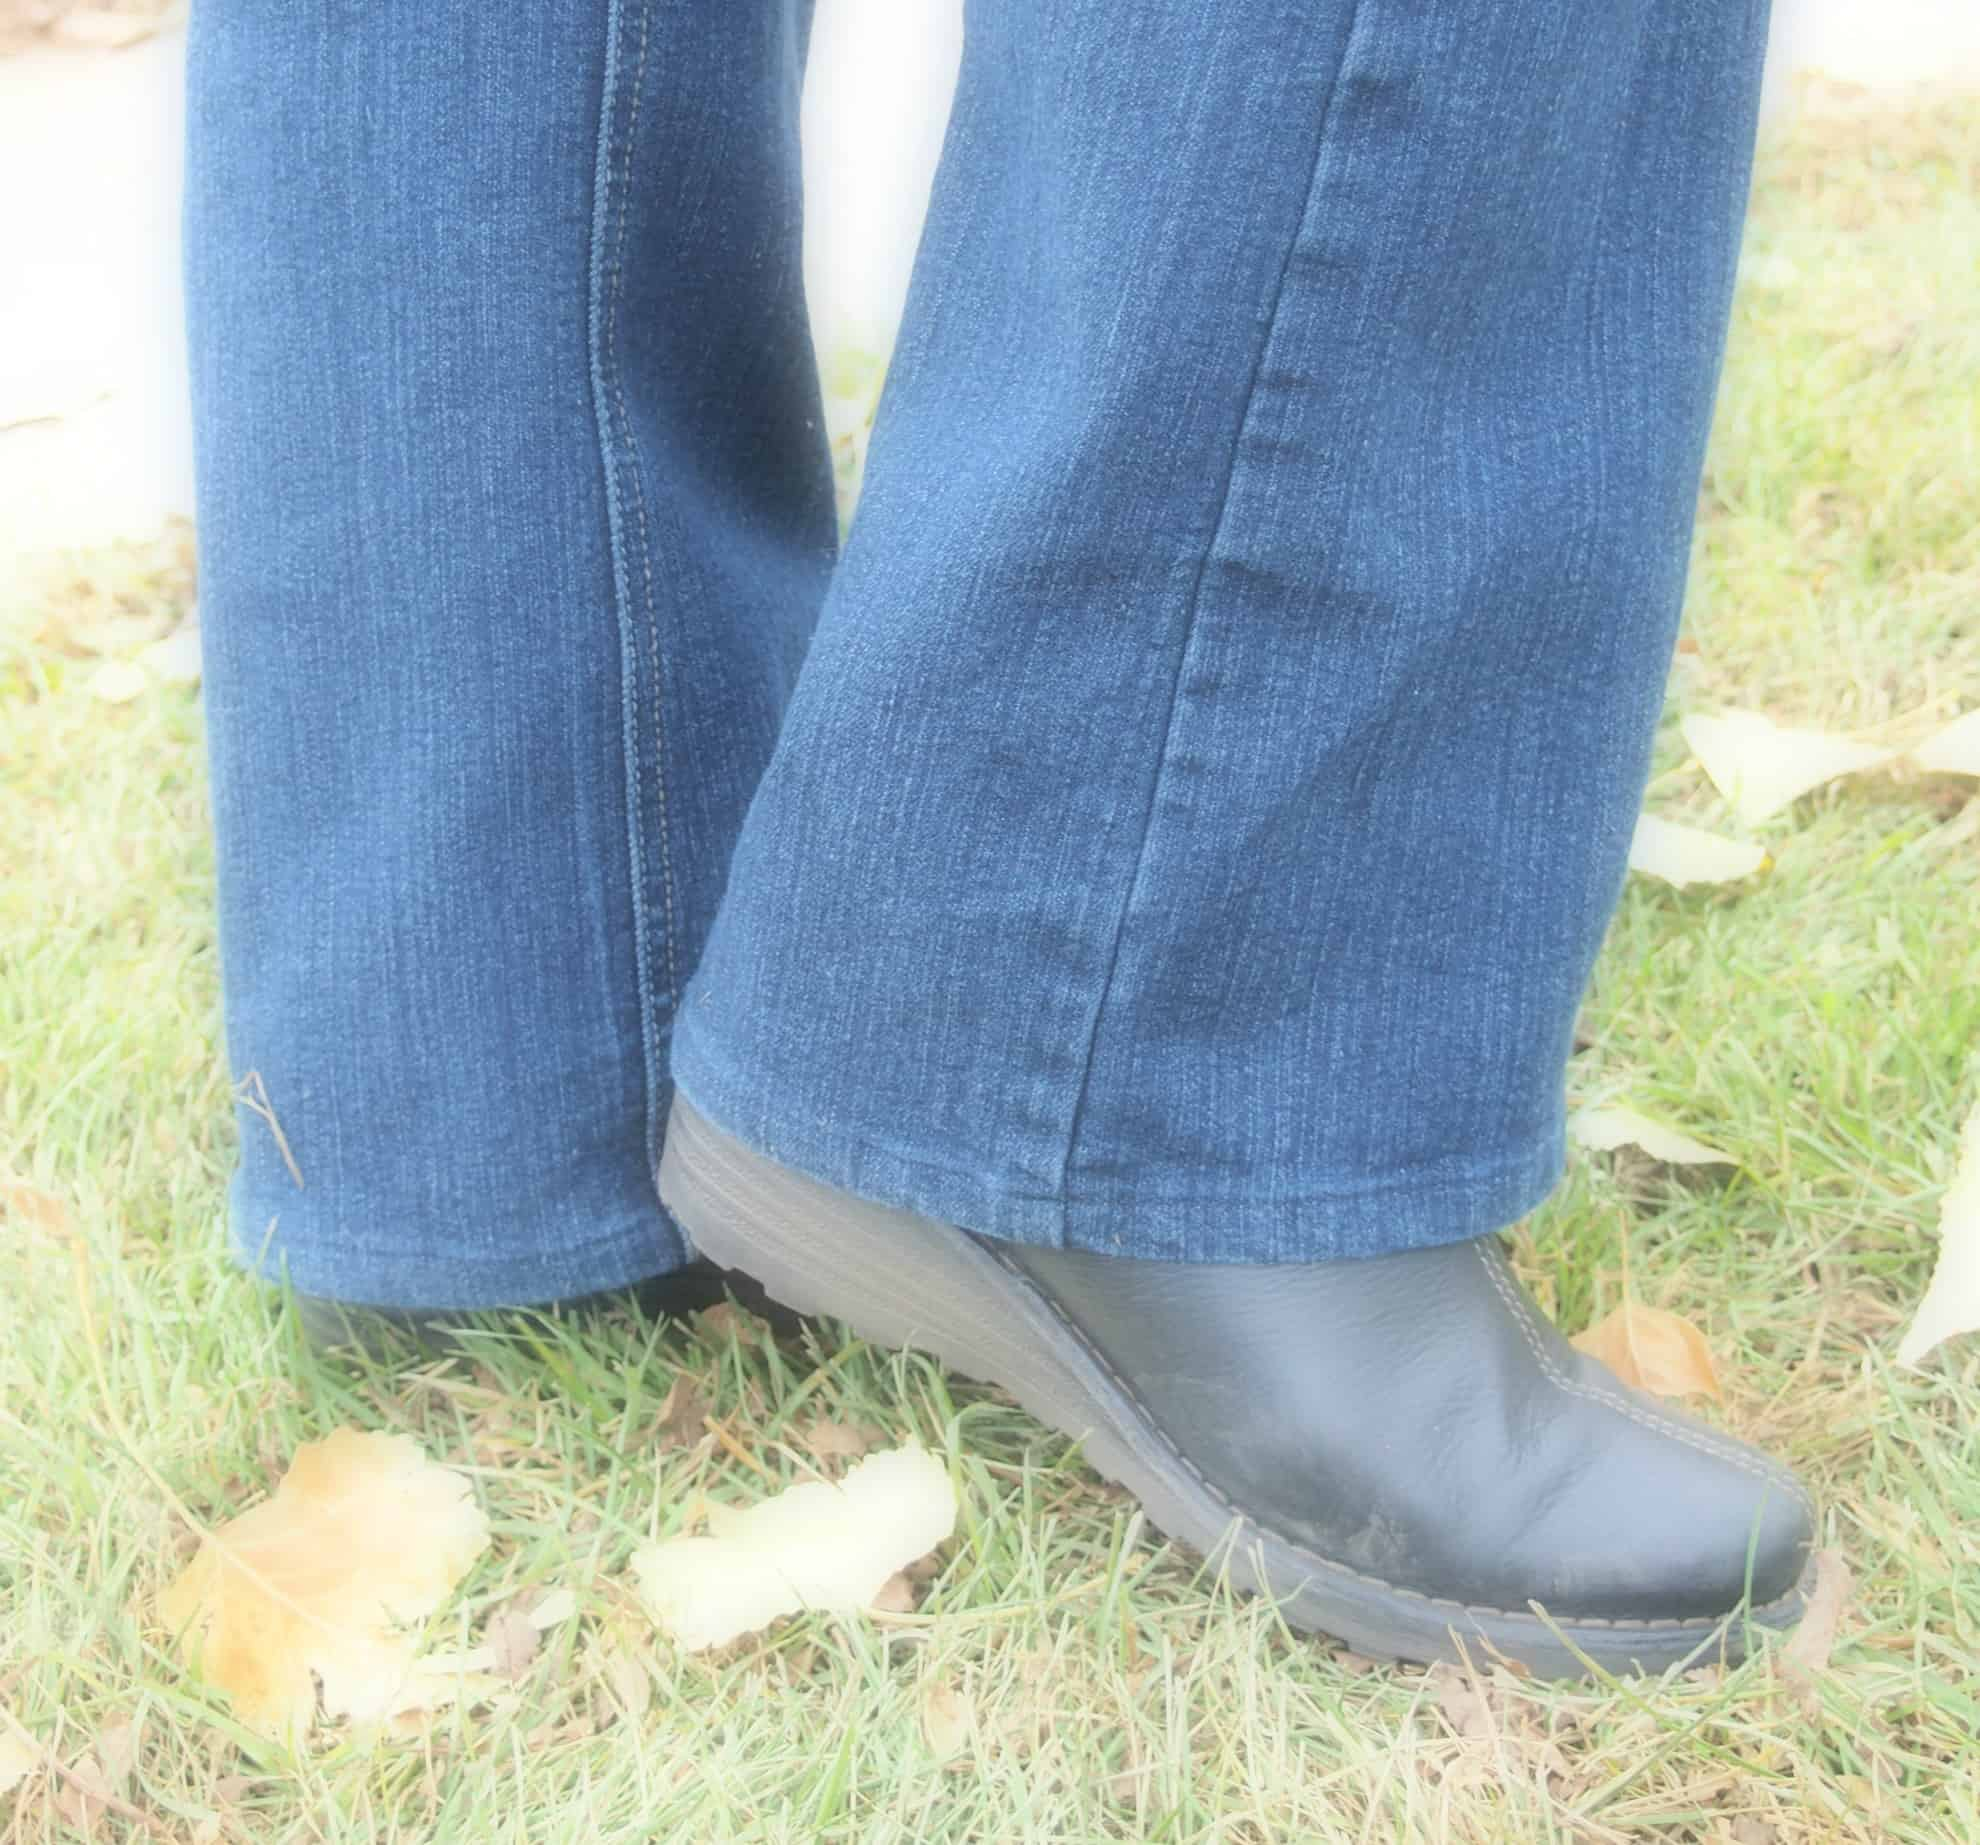 ECCO, Boots for Fall and Winter